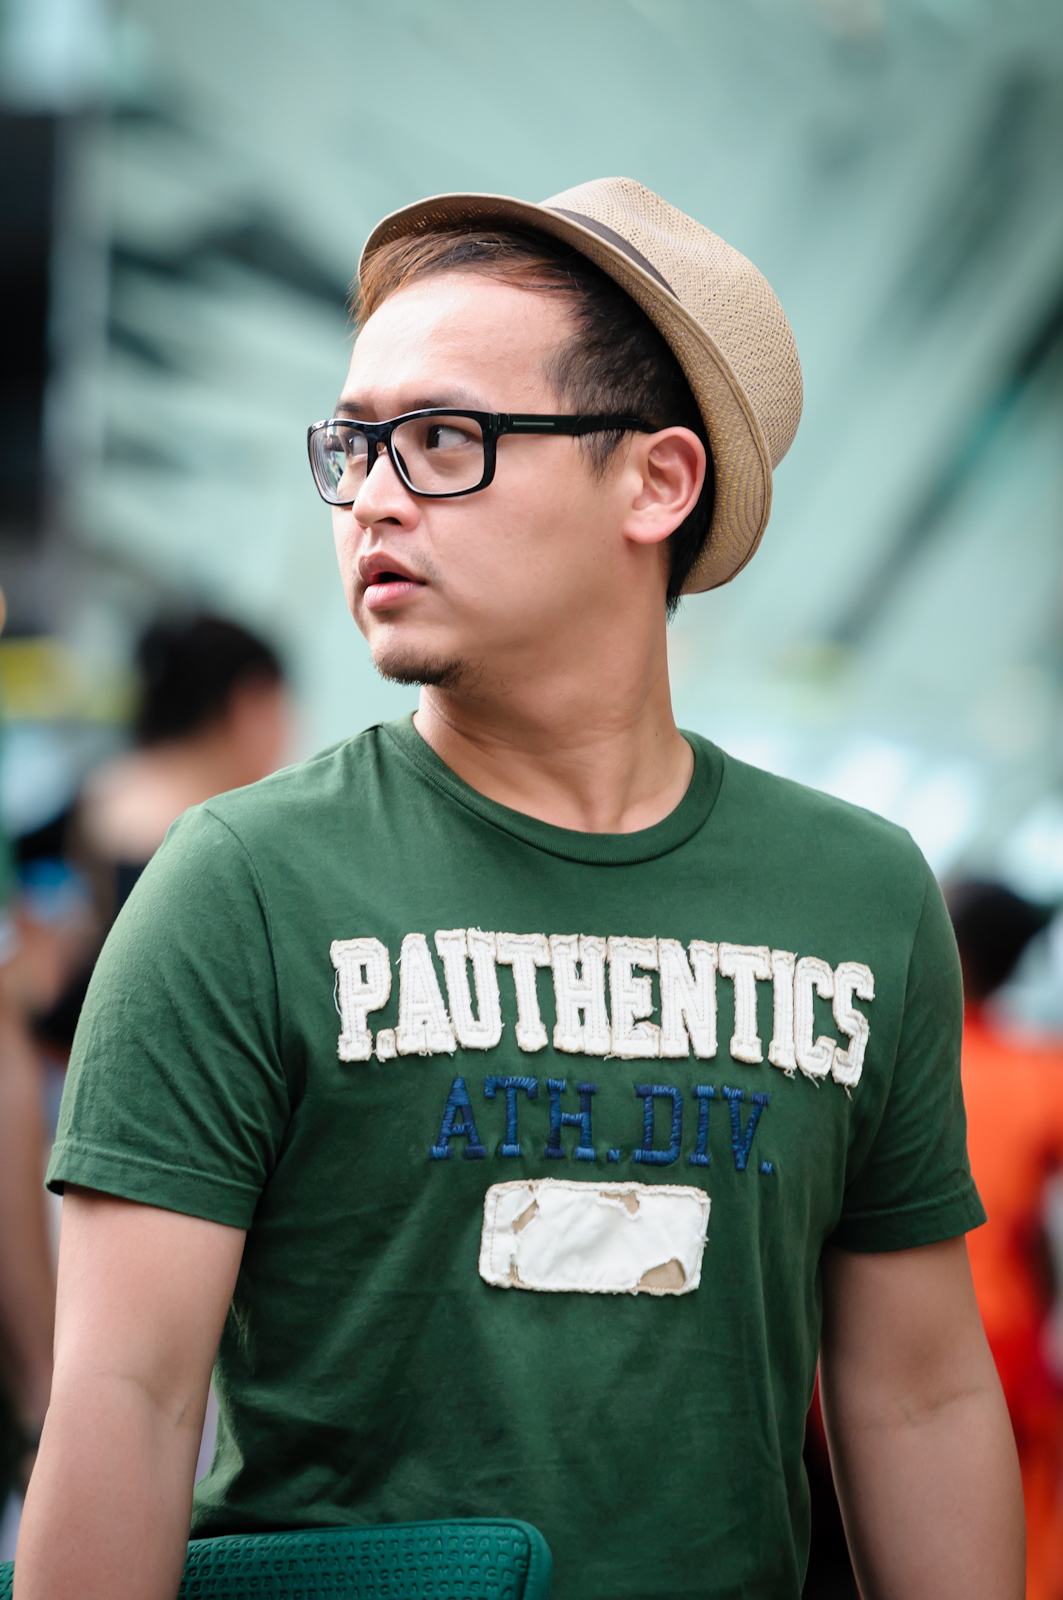 Street photography - Man wearing glasses and a hat